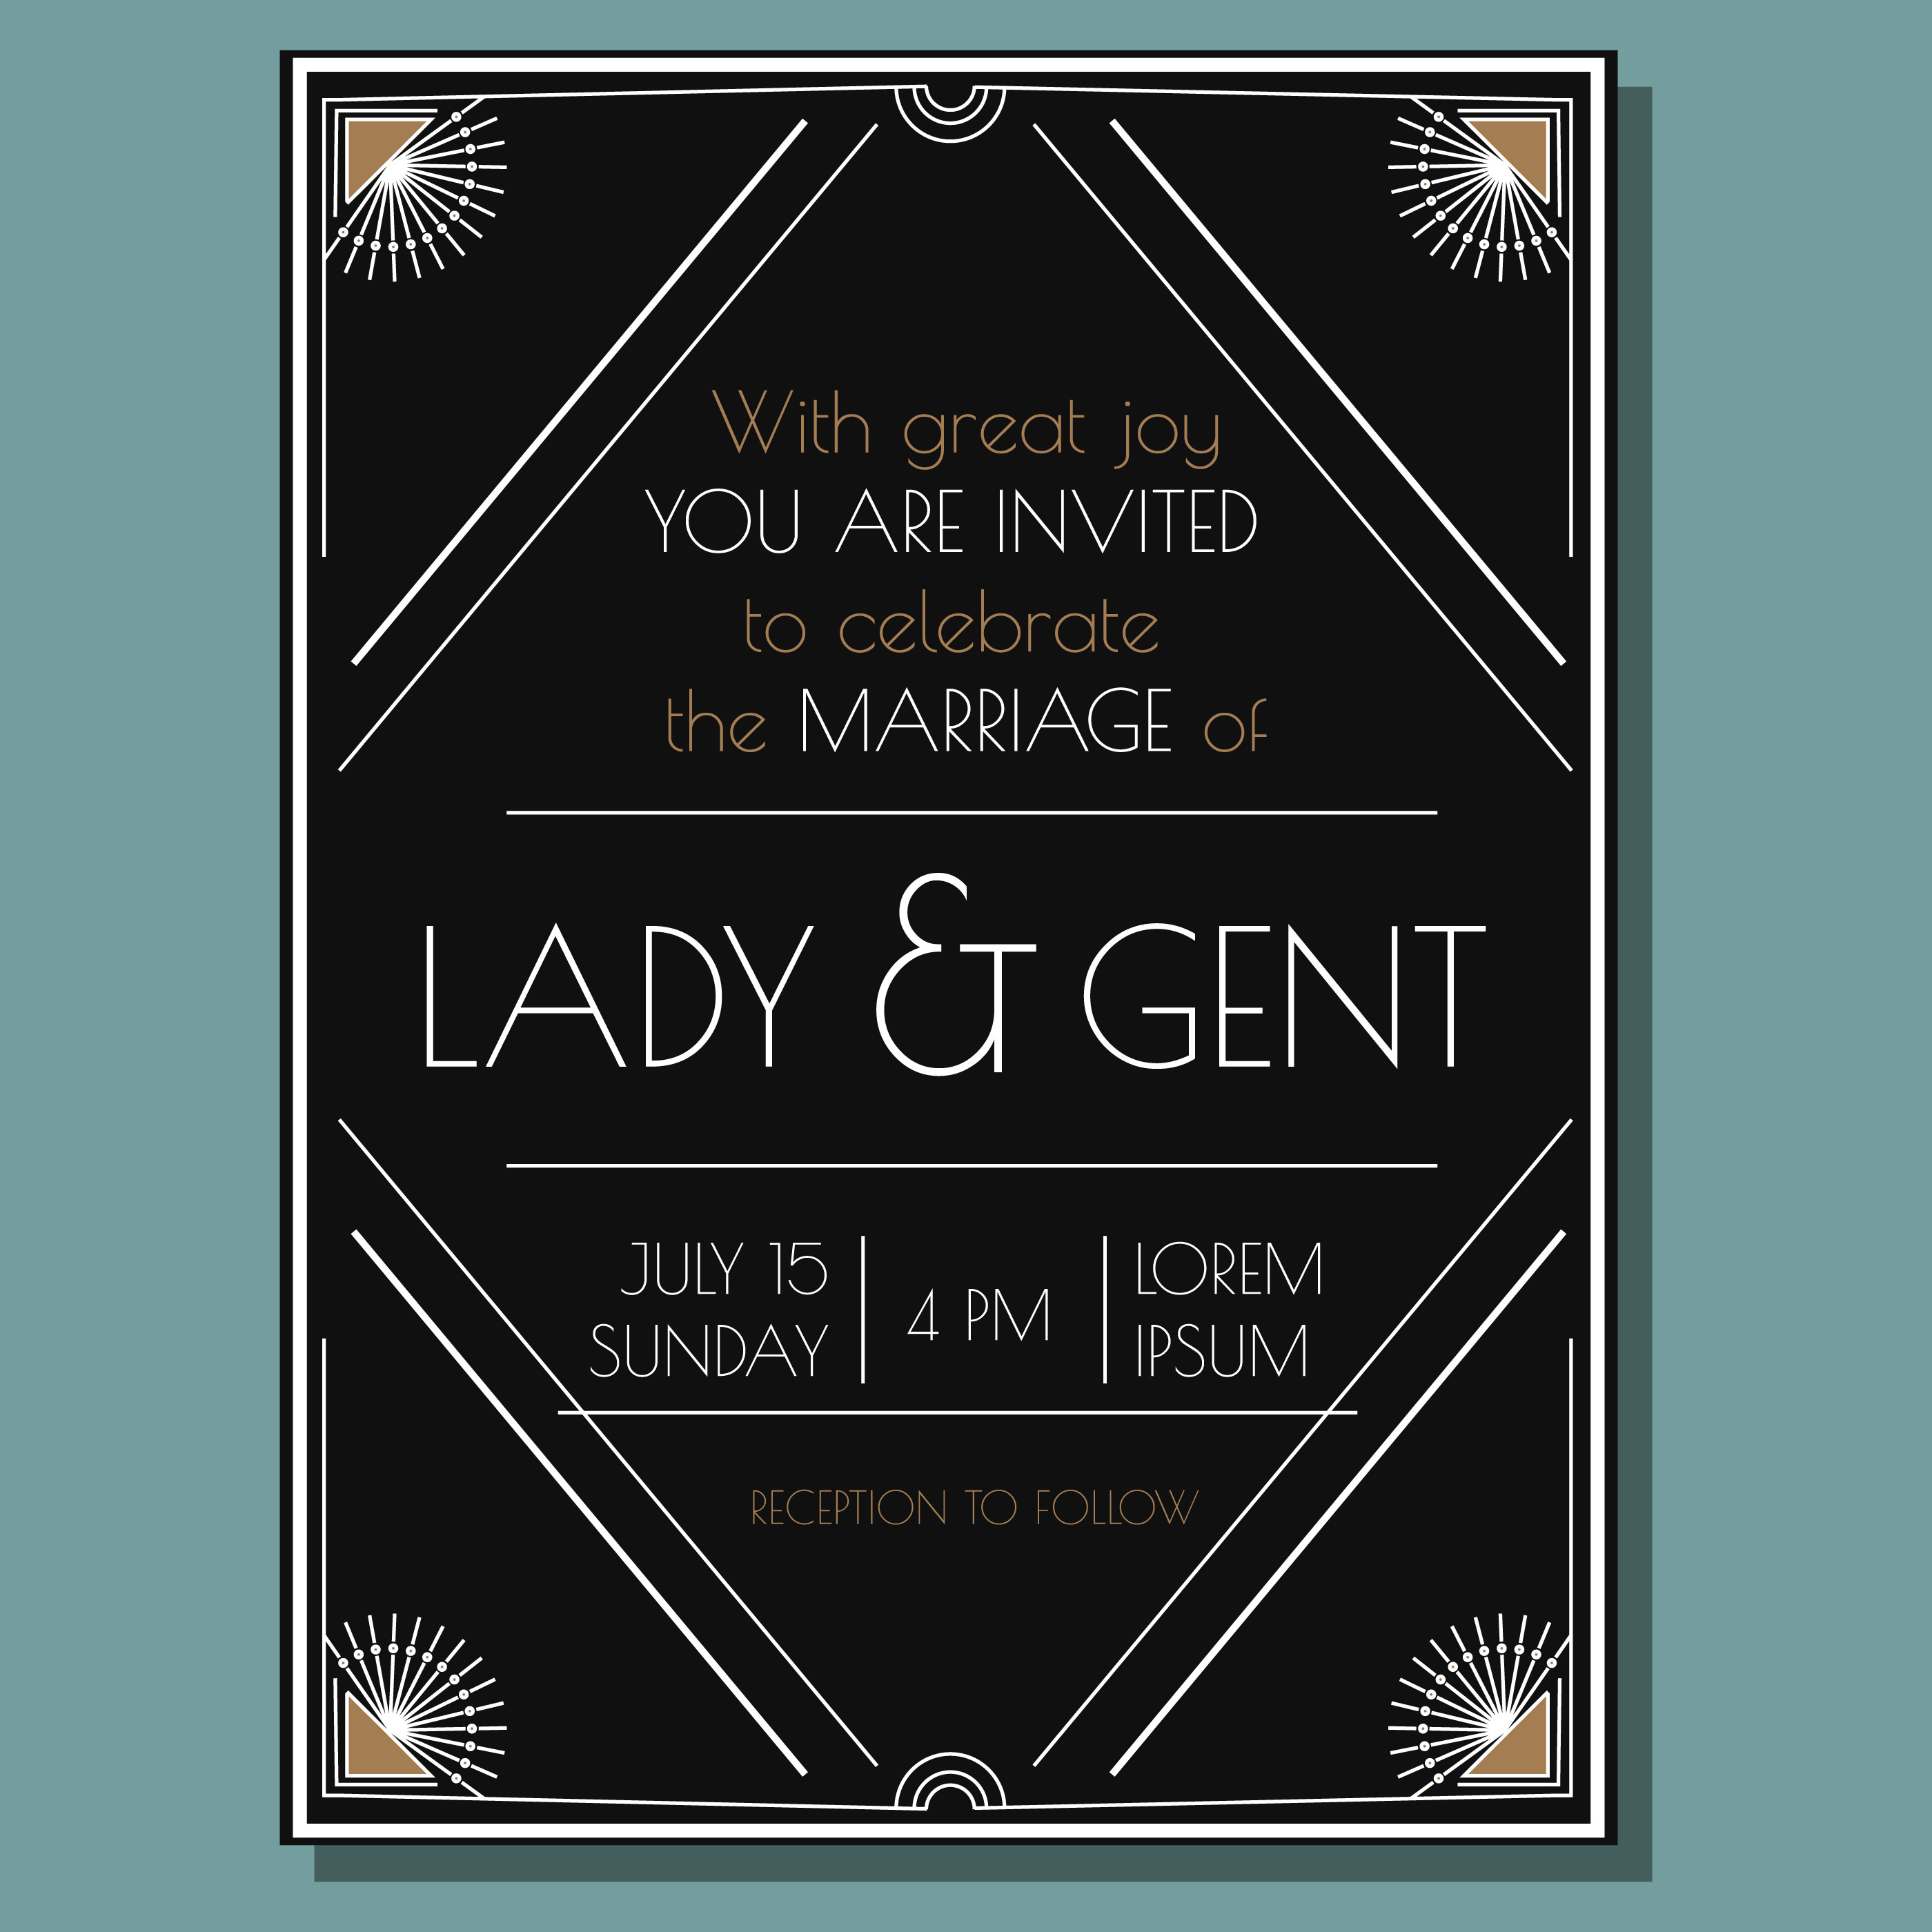 Vintage Wedding Invitation Free Vector Art 16620 Free Downloads